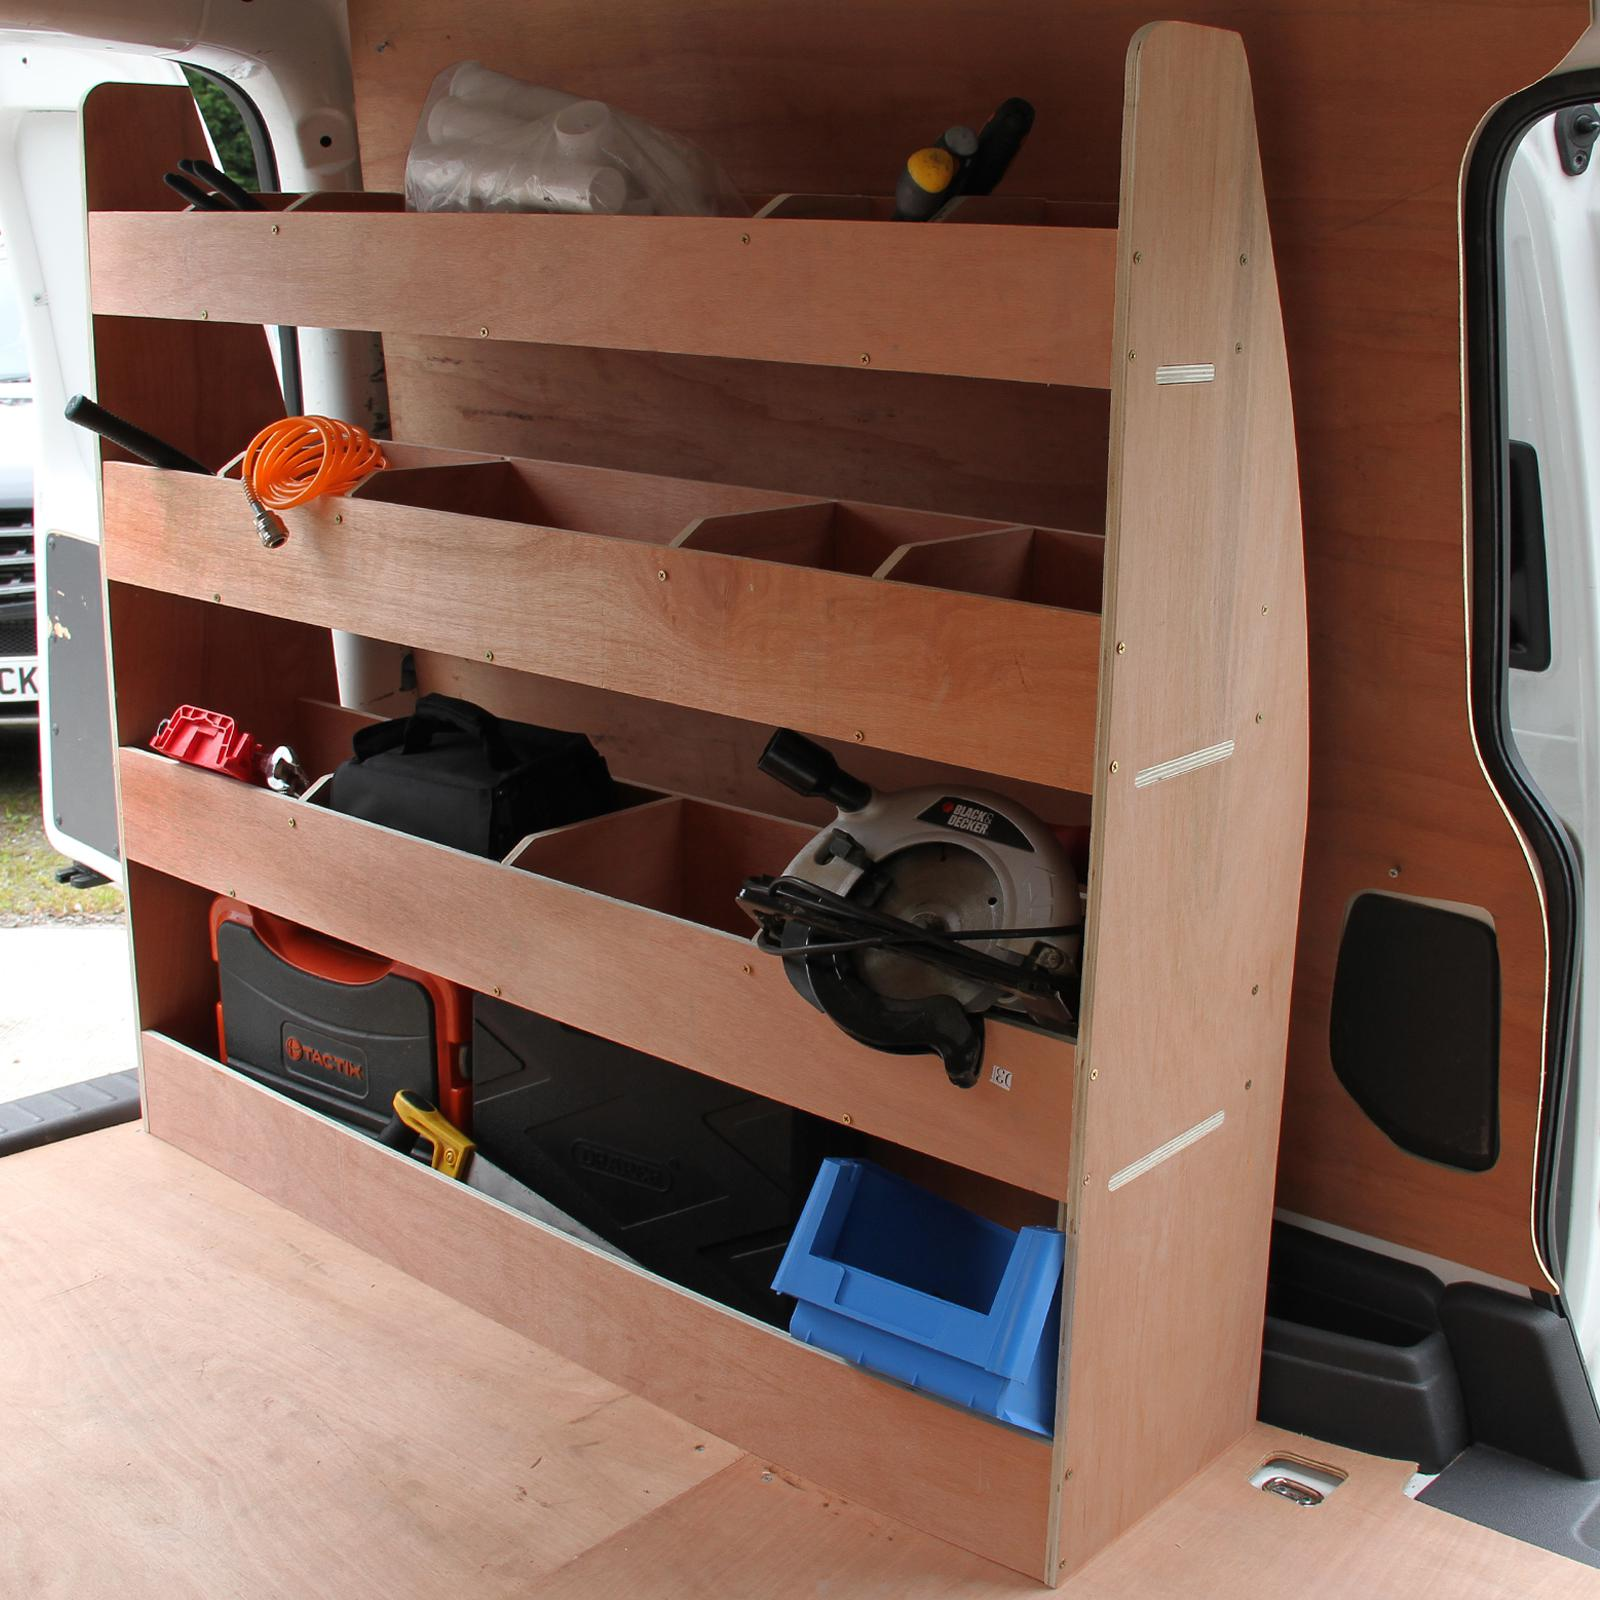 monster racking vw caddy fahrzeugeinrichtung fahrzeugausbau lieferwagen autoregal werkstattwagen. Black Bedroom Furniture Sets. Home Design Ideas